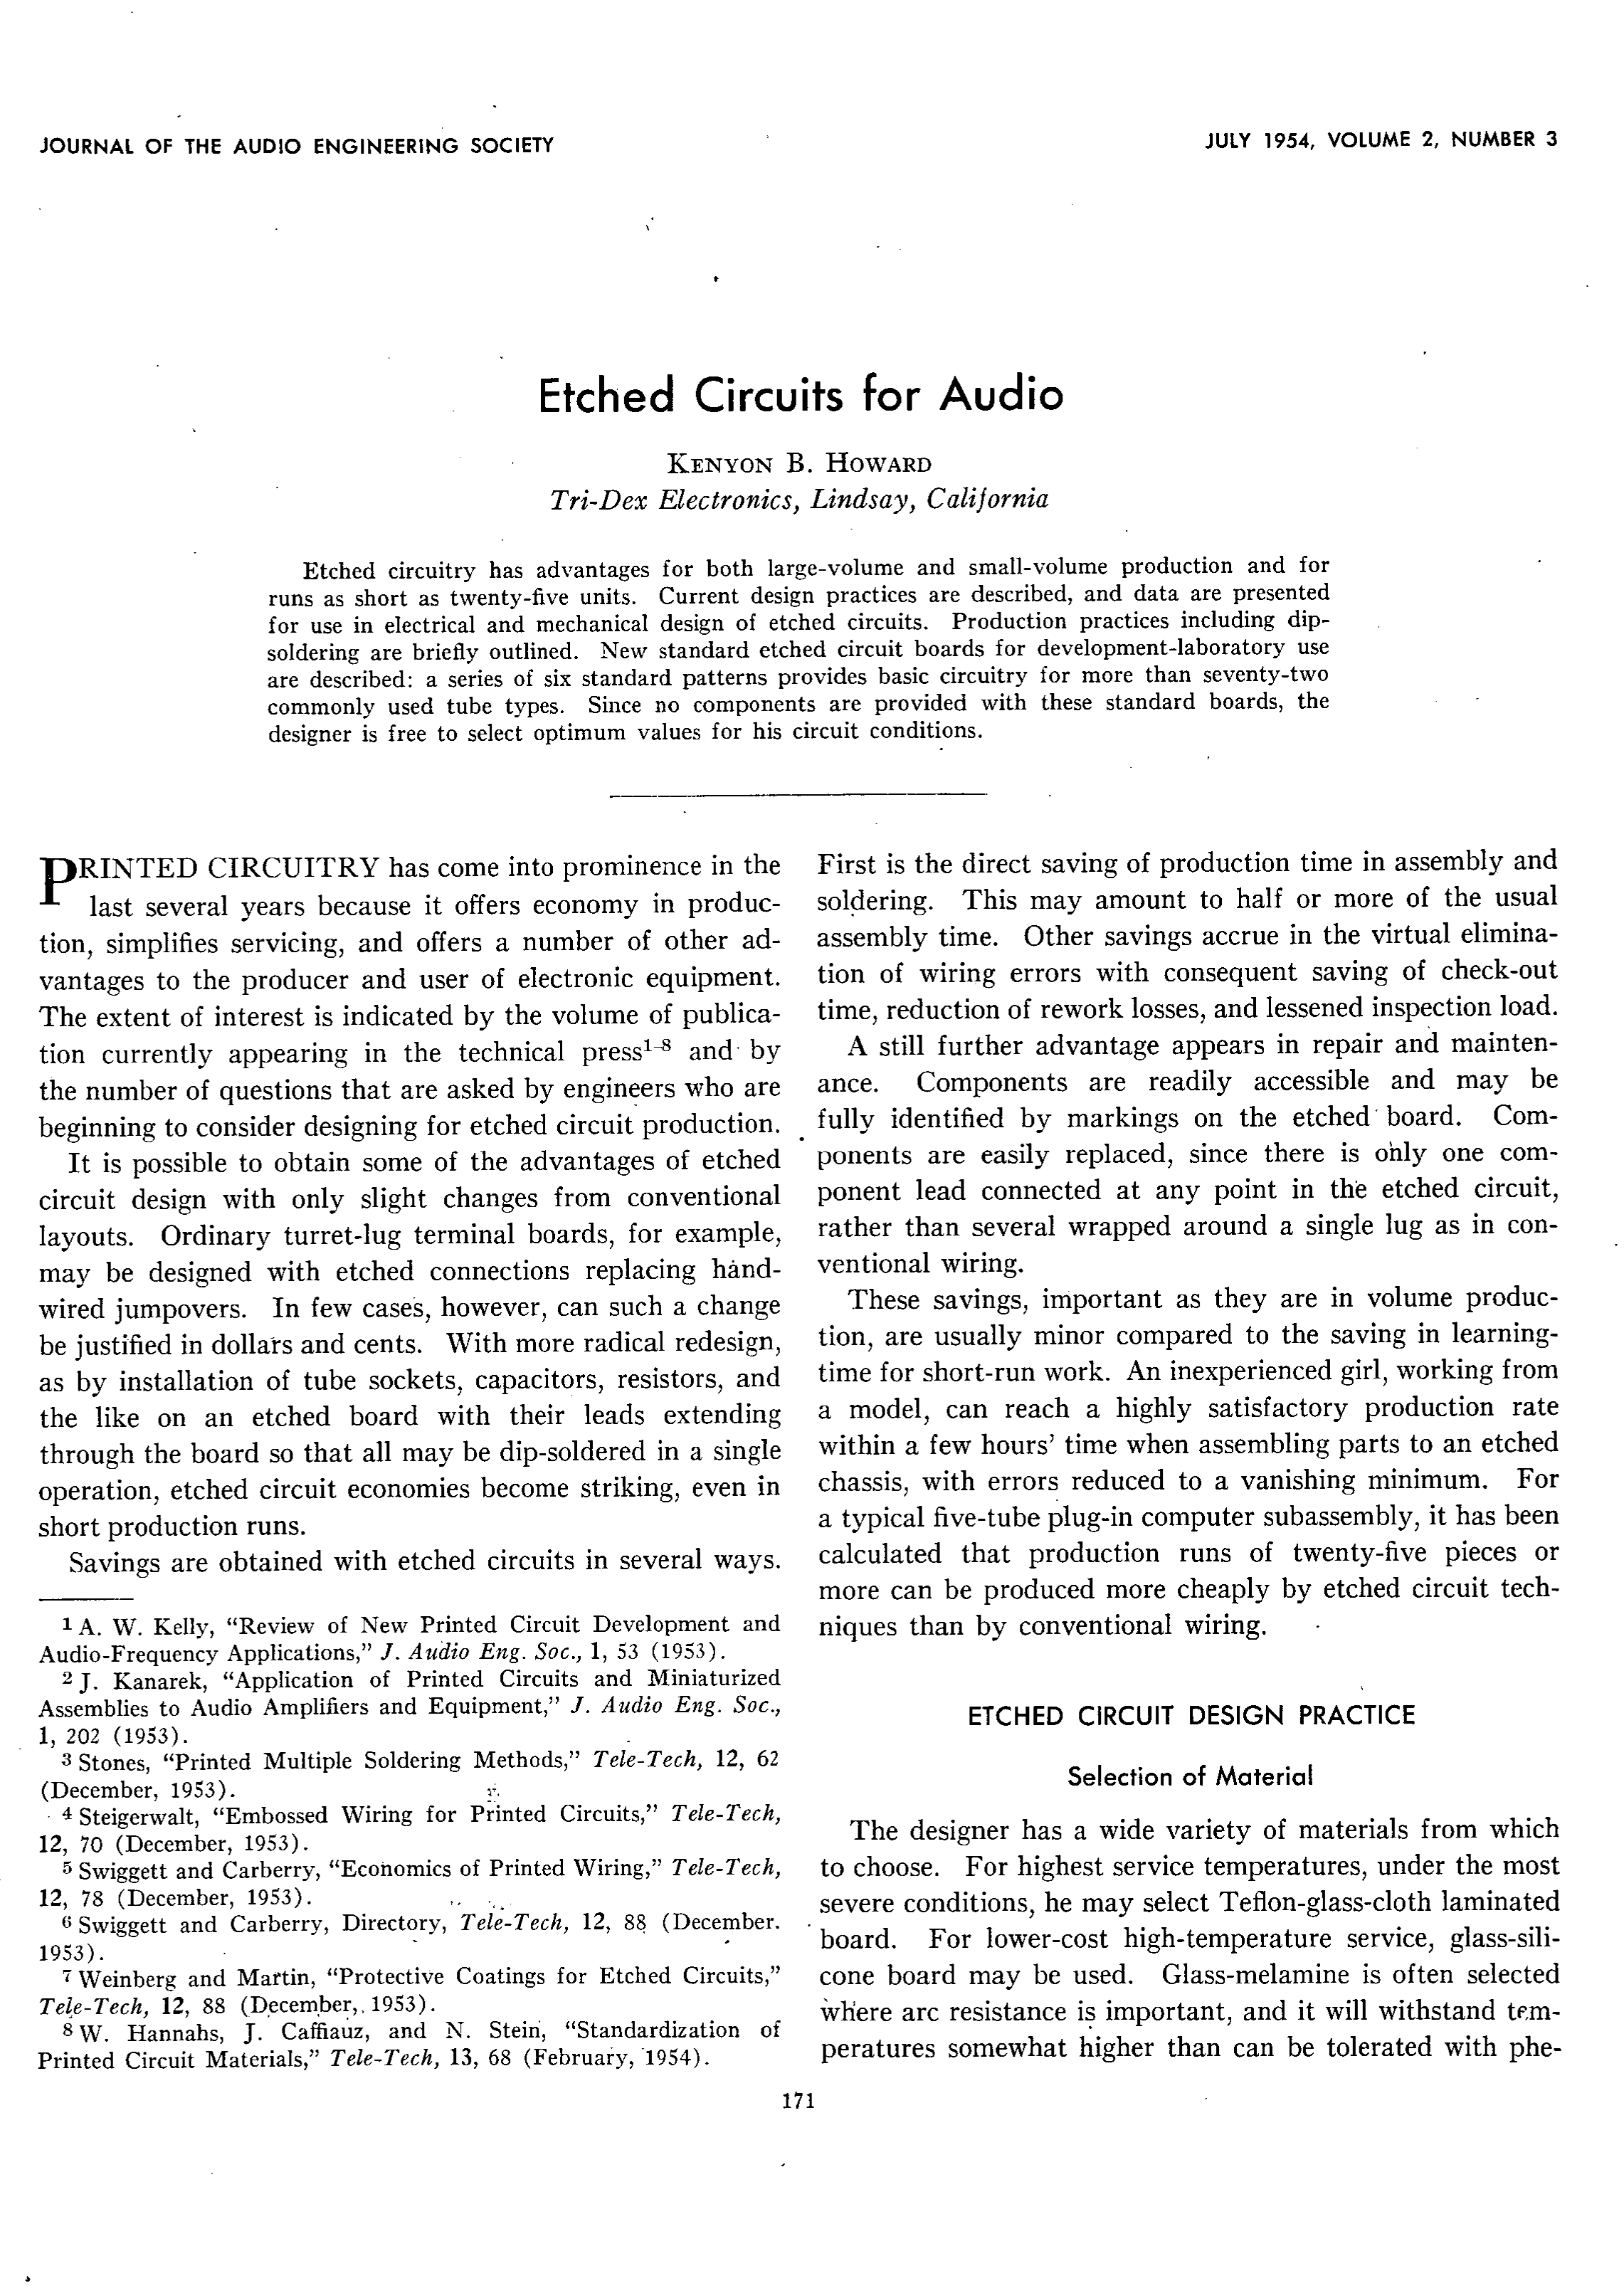 Aes E Library Etched Circuits For Audio How To Repair A Broken Printed Circuit Board Thumbnail